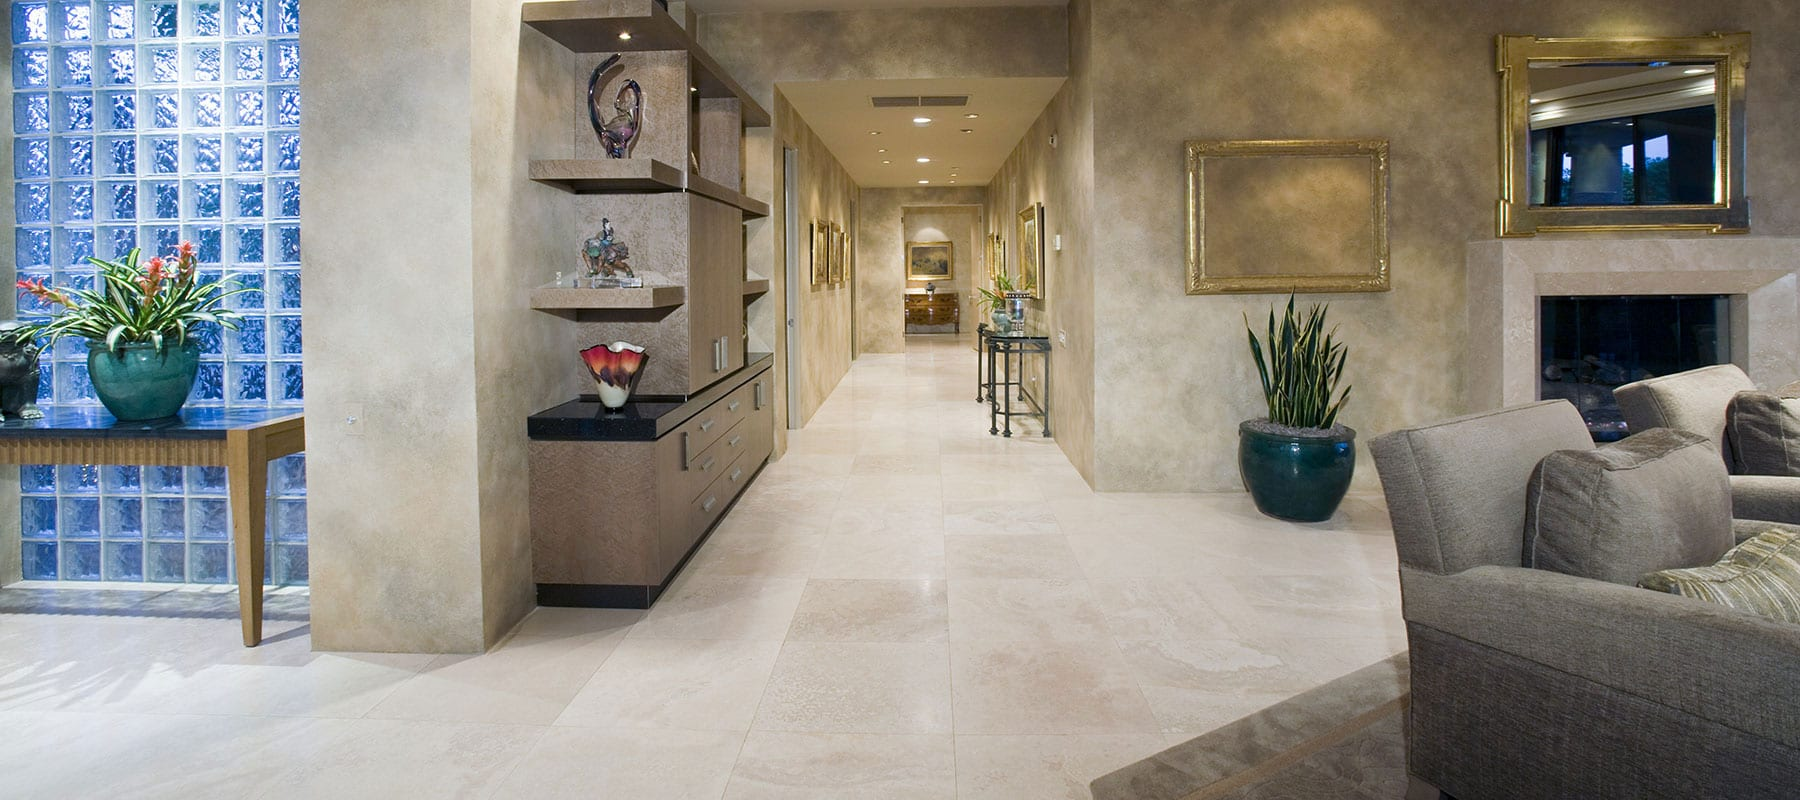 Stoneline-Group-Ivory-Marble-Collection-Marble-Tile-French-Pattern-Brushed-Chiseled-Tumbled-livingroom-floor-Pictures